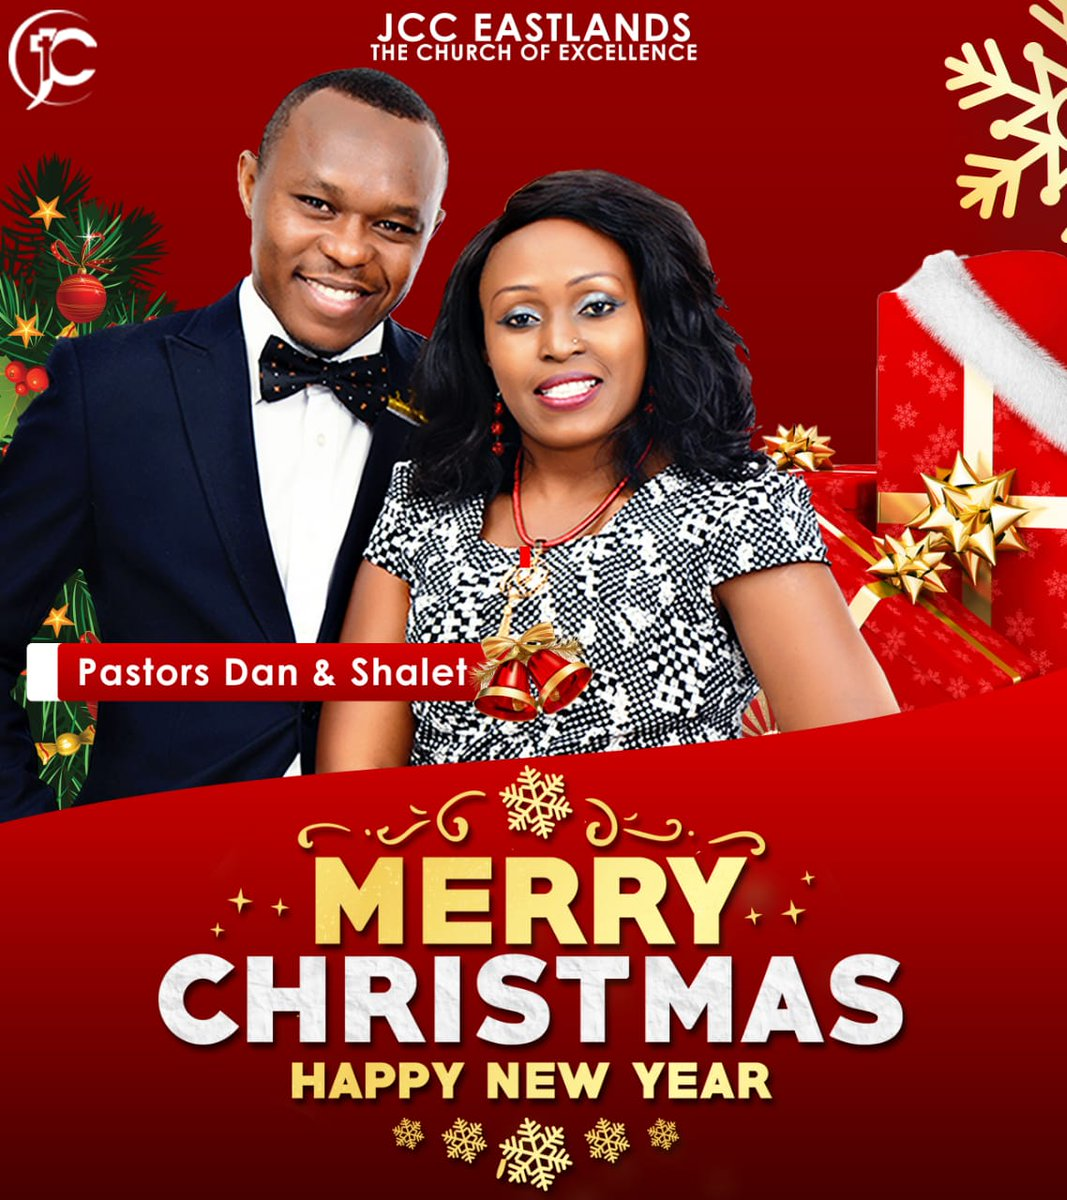 Christmas Presence Movie.Daniel Murage On Twitter A Very Merry Christmas Friends